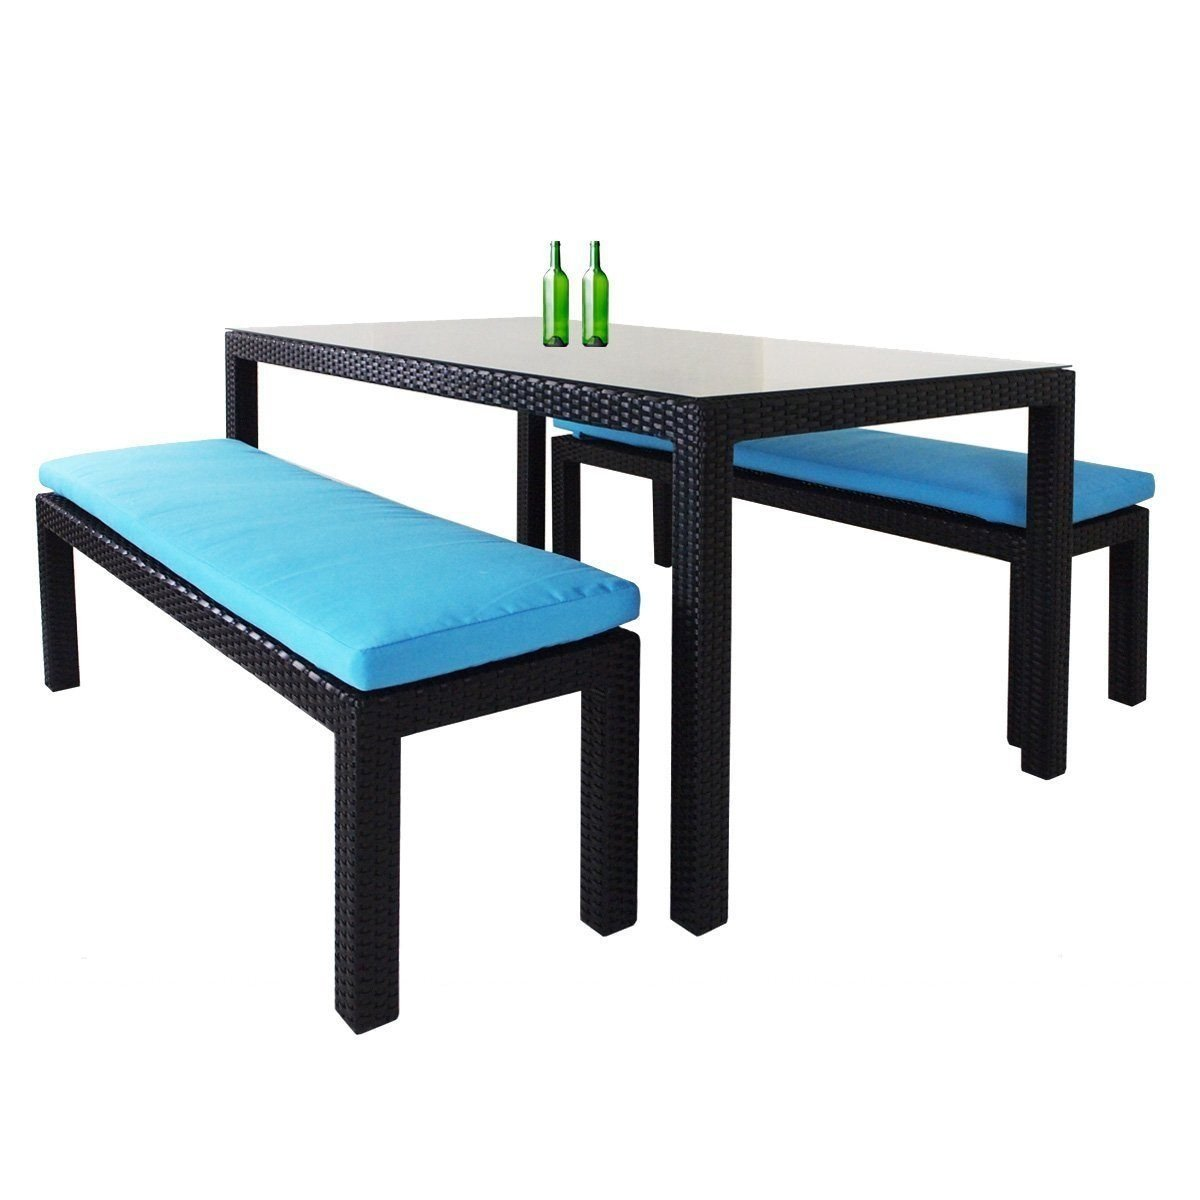 Bondi 3 Pcs Dining Set, Blue Cushion